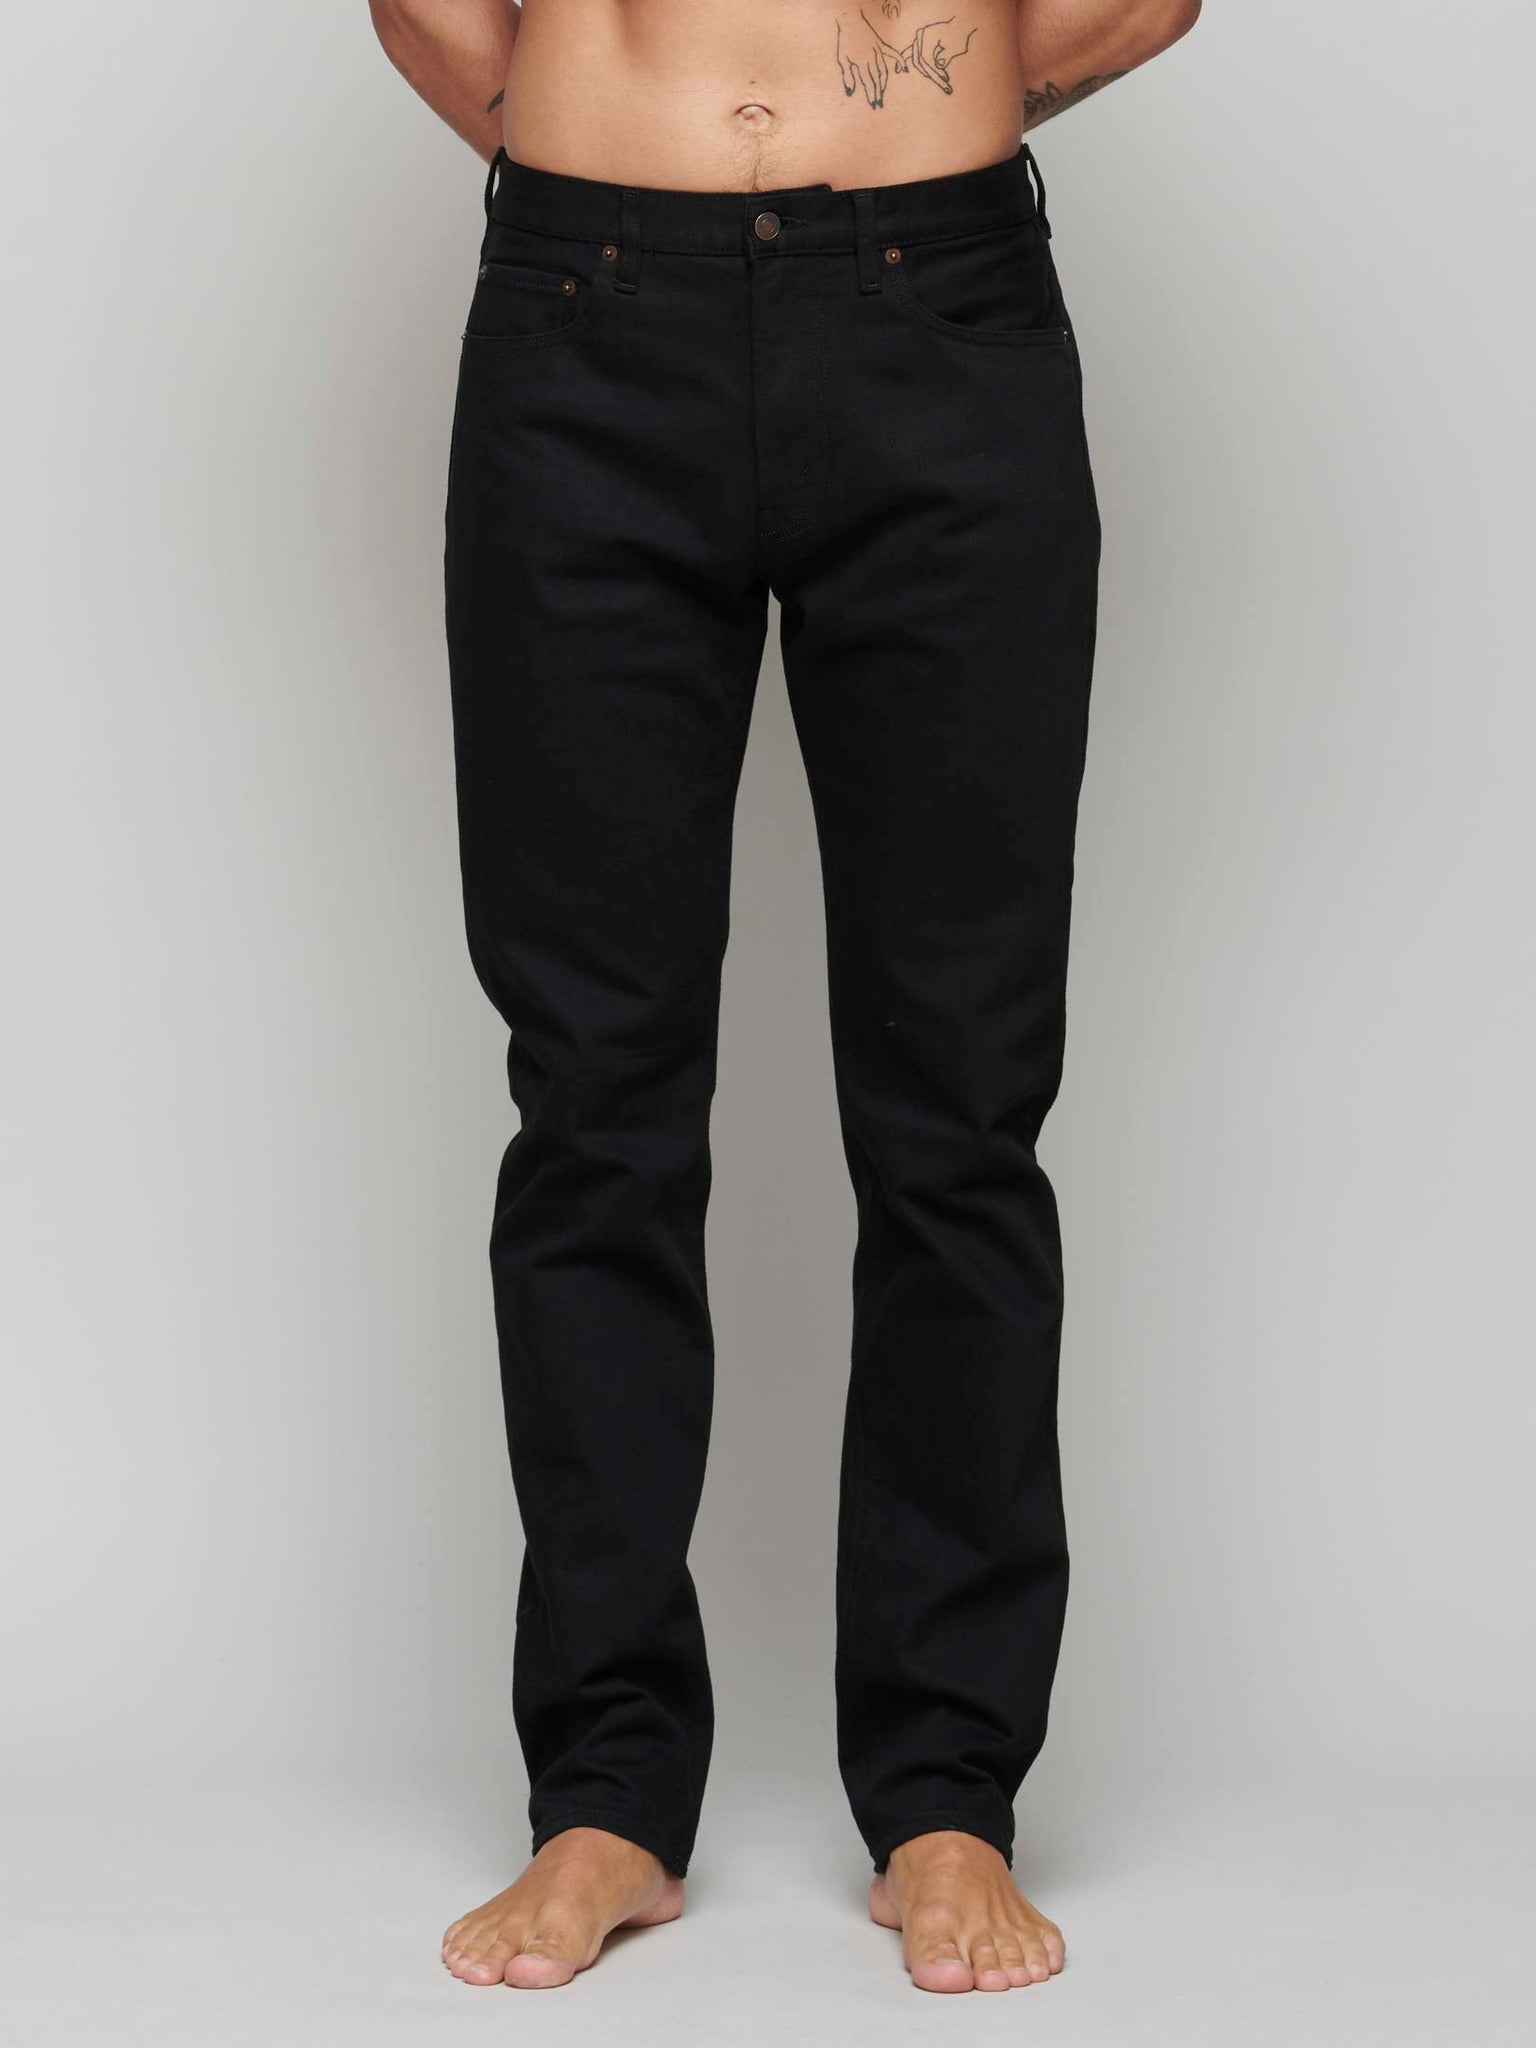 TM005 Tapered Jeans, Stay Black